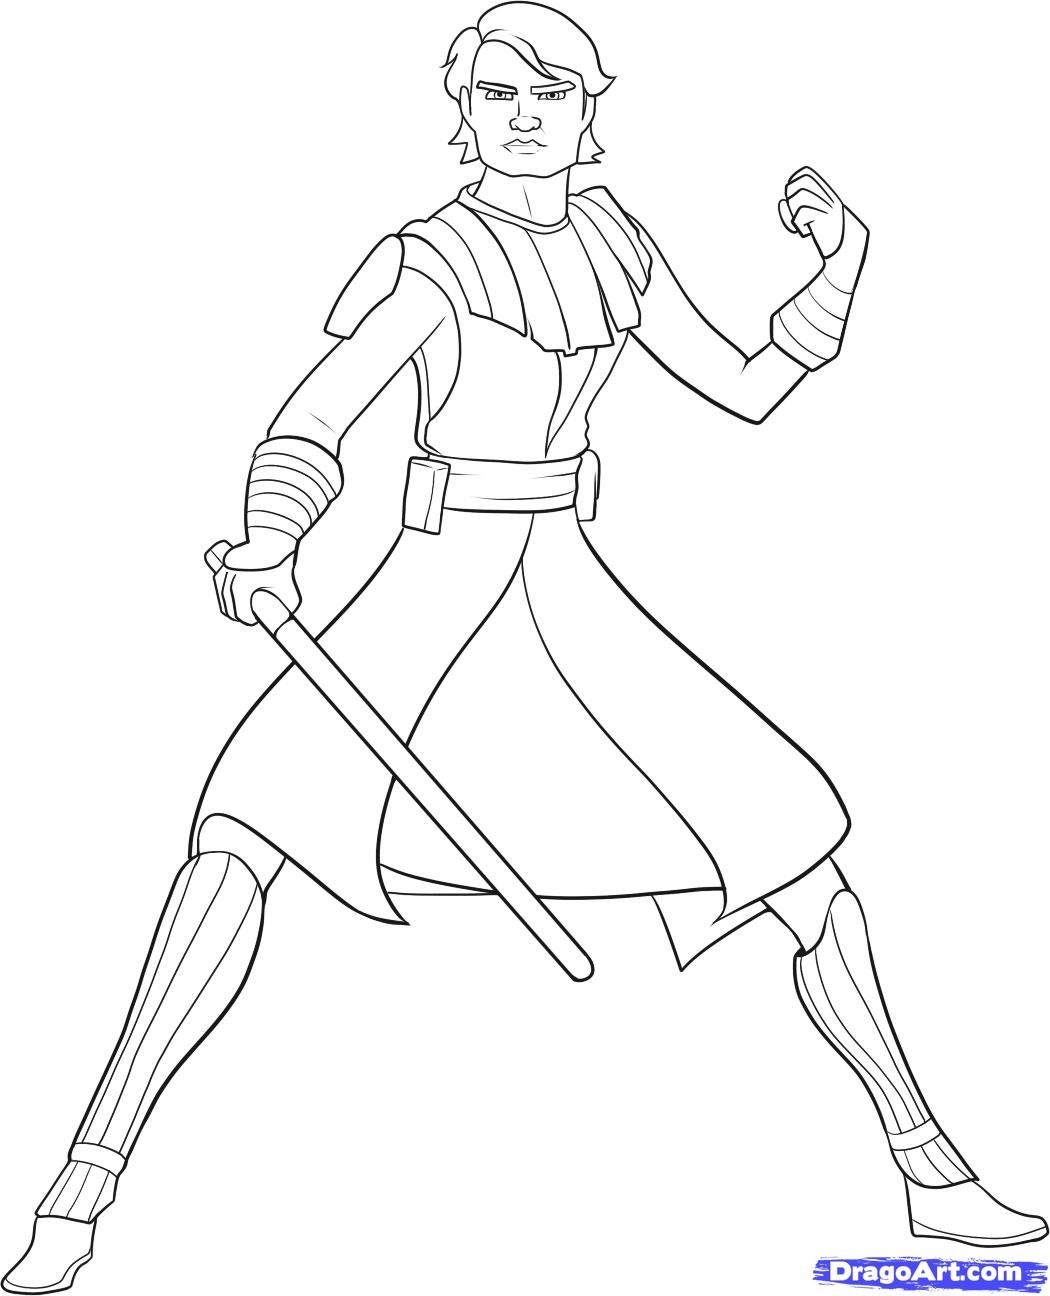 Image result for clone wars drawings | Star Wars | Pinterest | Draw